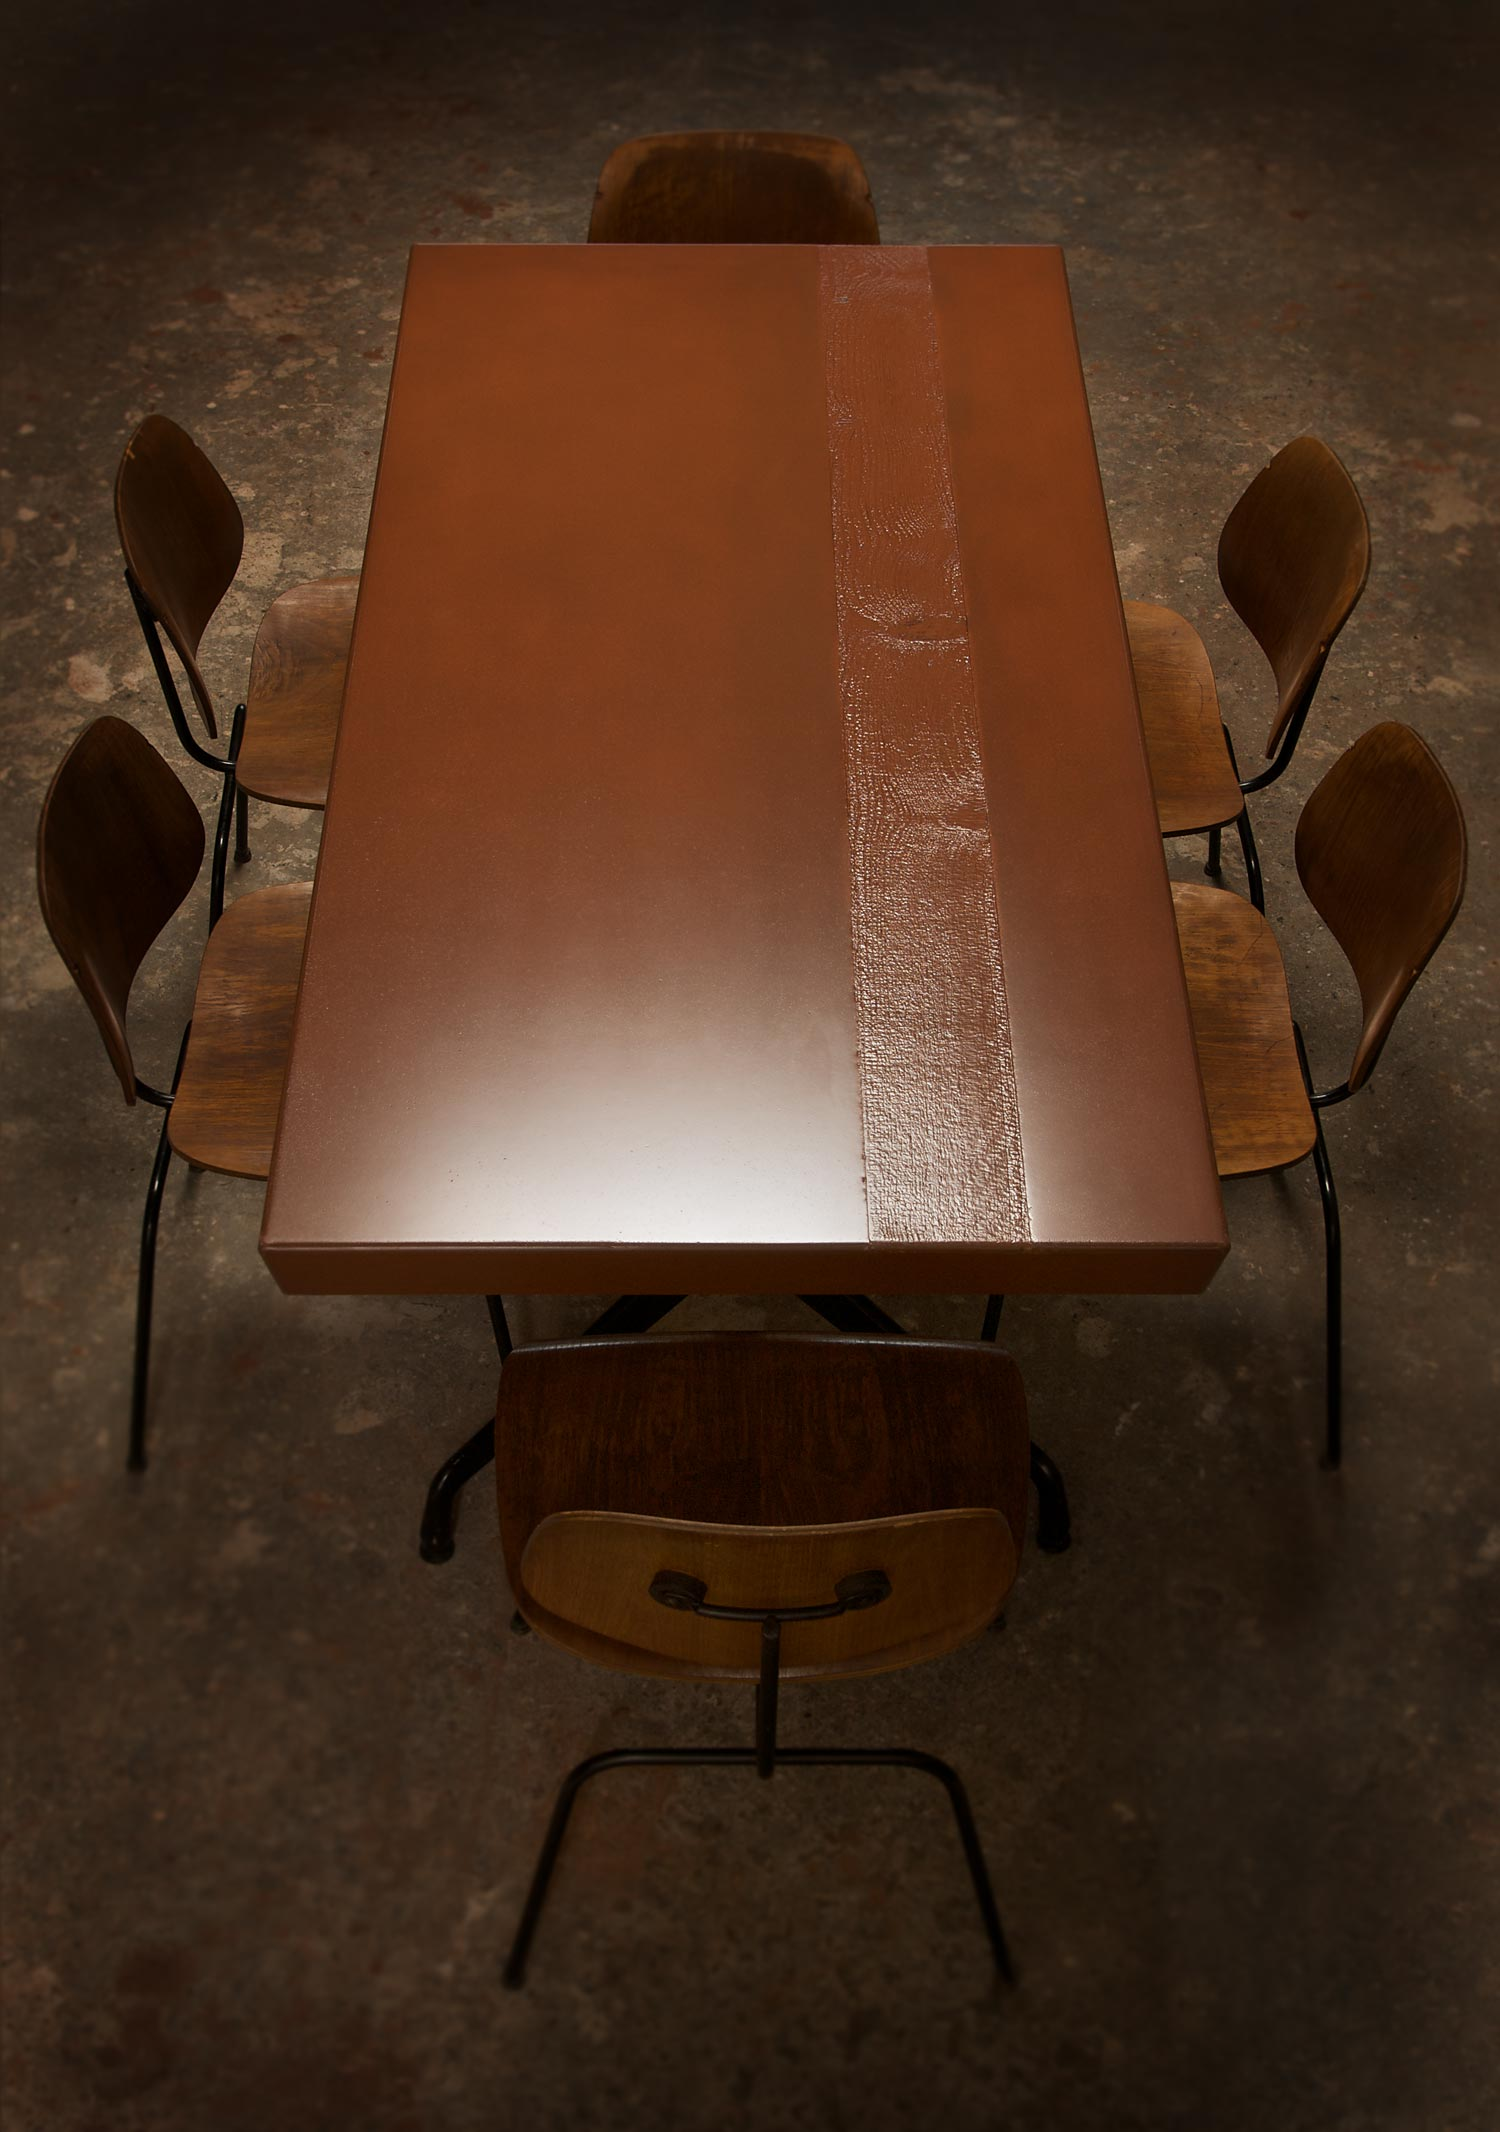 Handmade red concrete dining table with a wood texture inlay